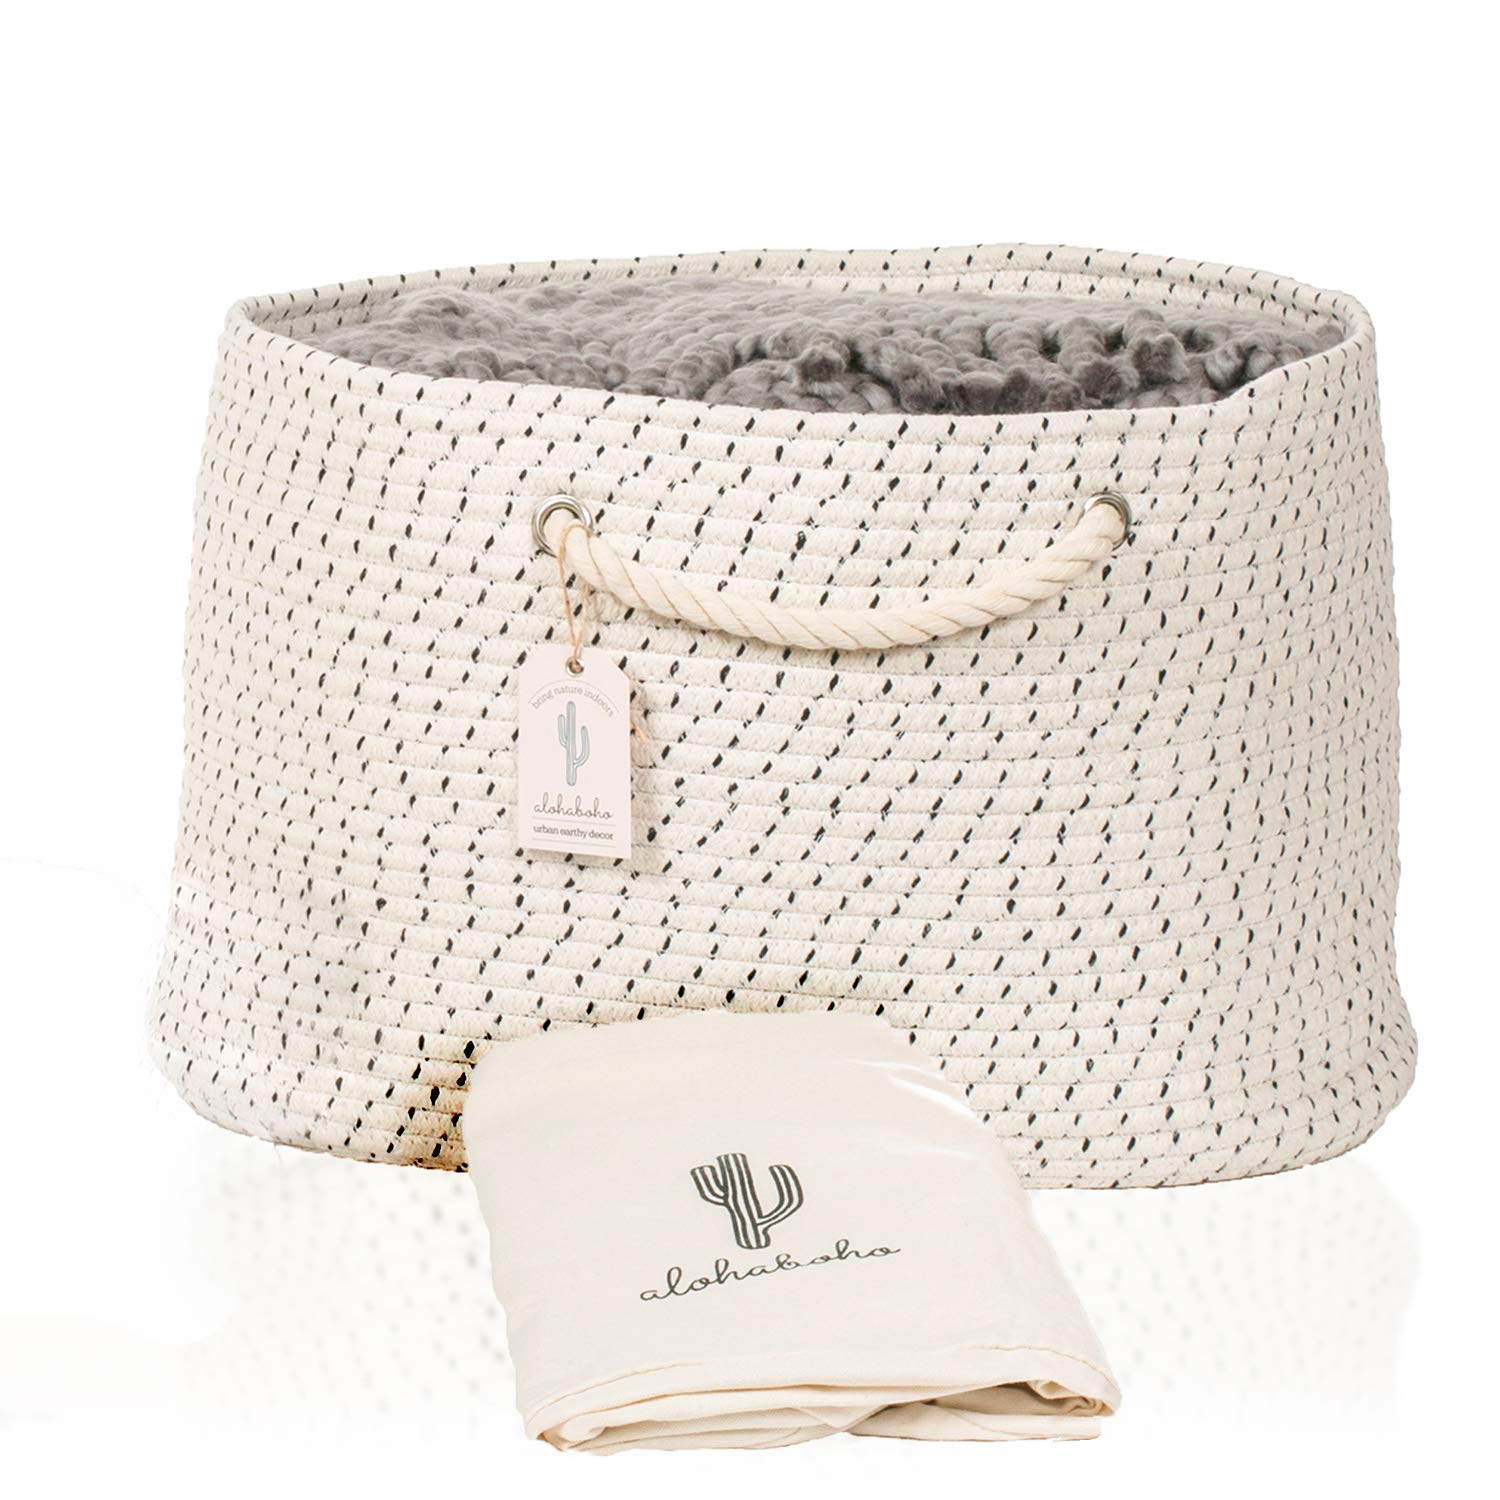 XXL Extra Large Cotton Rope Basket Includes Laundry Bag | Wide Storage Organizer for Living Room, Blankets, Sofa Throws, Nursery, Baby Kids Toys, Playroom: 20'' x 14 Hand Woven Storage Hamper by alohaboho